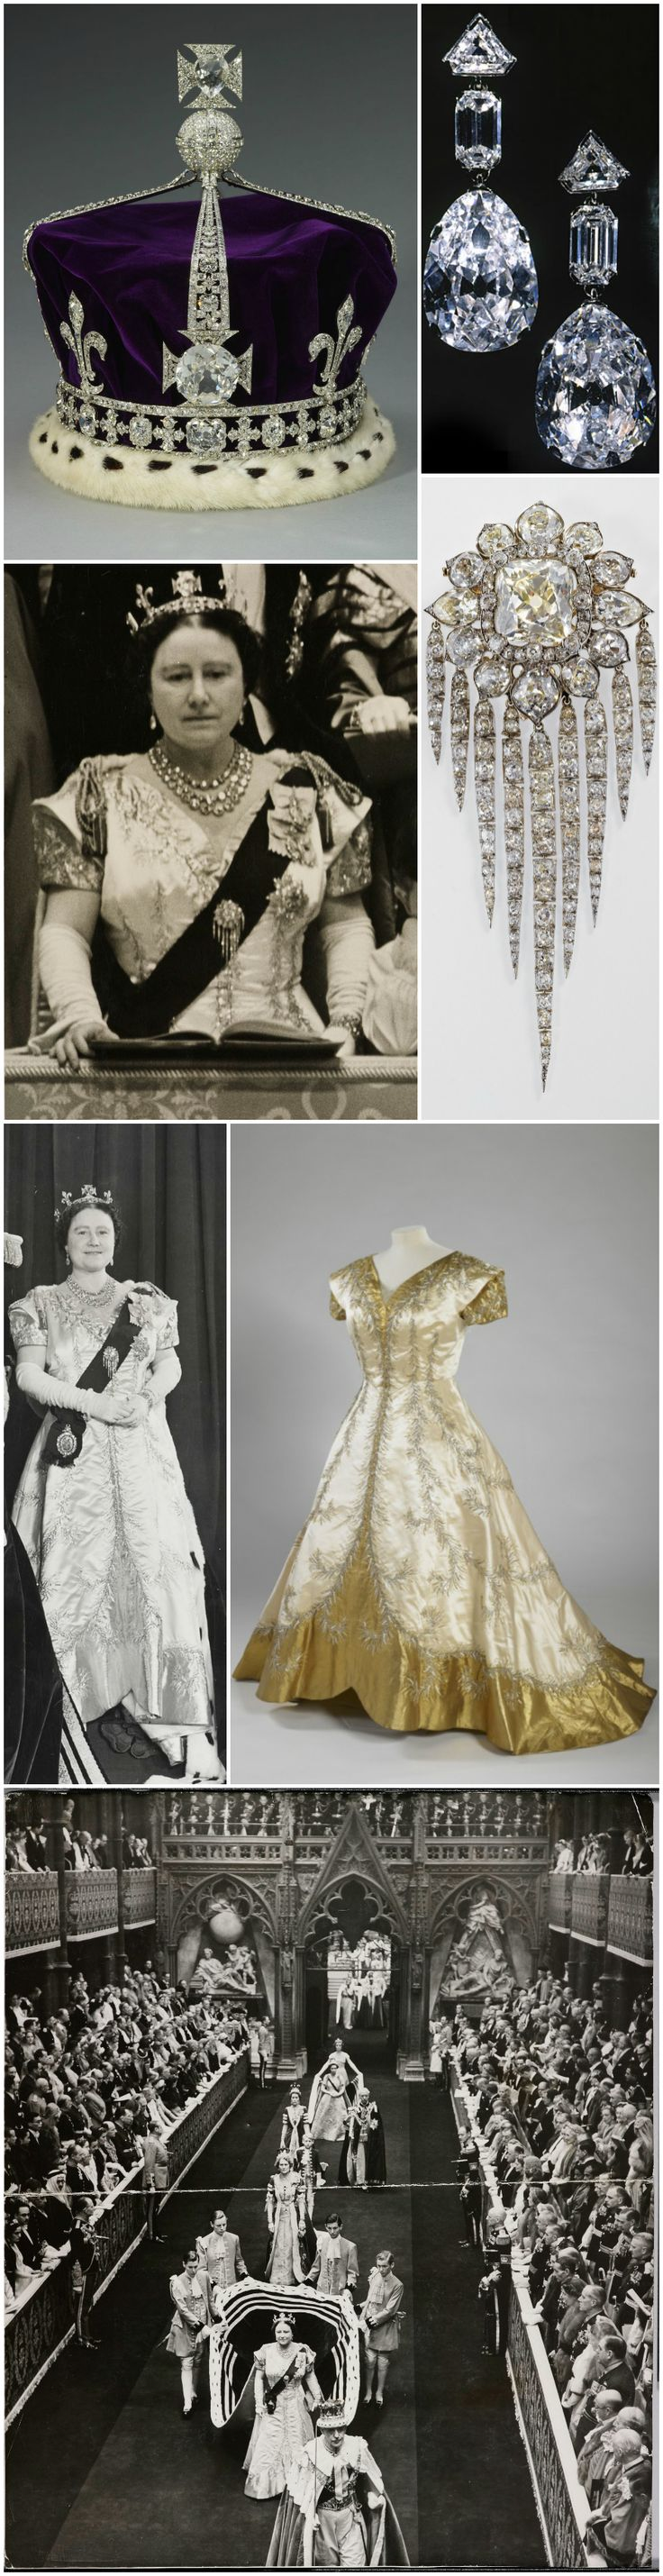 Queen Elizabeth The Queen Mother attended the 1953 Coronation wearing a crinoline-skirted Norman Hartnell gown in white satin bordered in gold tissue. Her jewels included Queen Victoria's Diamond Fringe Brooch and the Greville Peardrop Earrings (made in 1856 and 1938, respectively). She also wore the crown that was created for her own coronation in 1937, but without the arches. Photo of the Greville earrings is via Royal Magazin, remaining images are courtesy of the Royal Collection Trust.